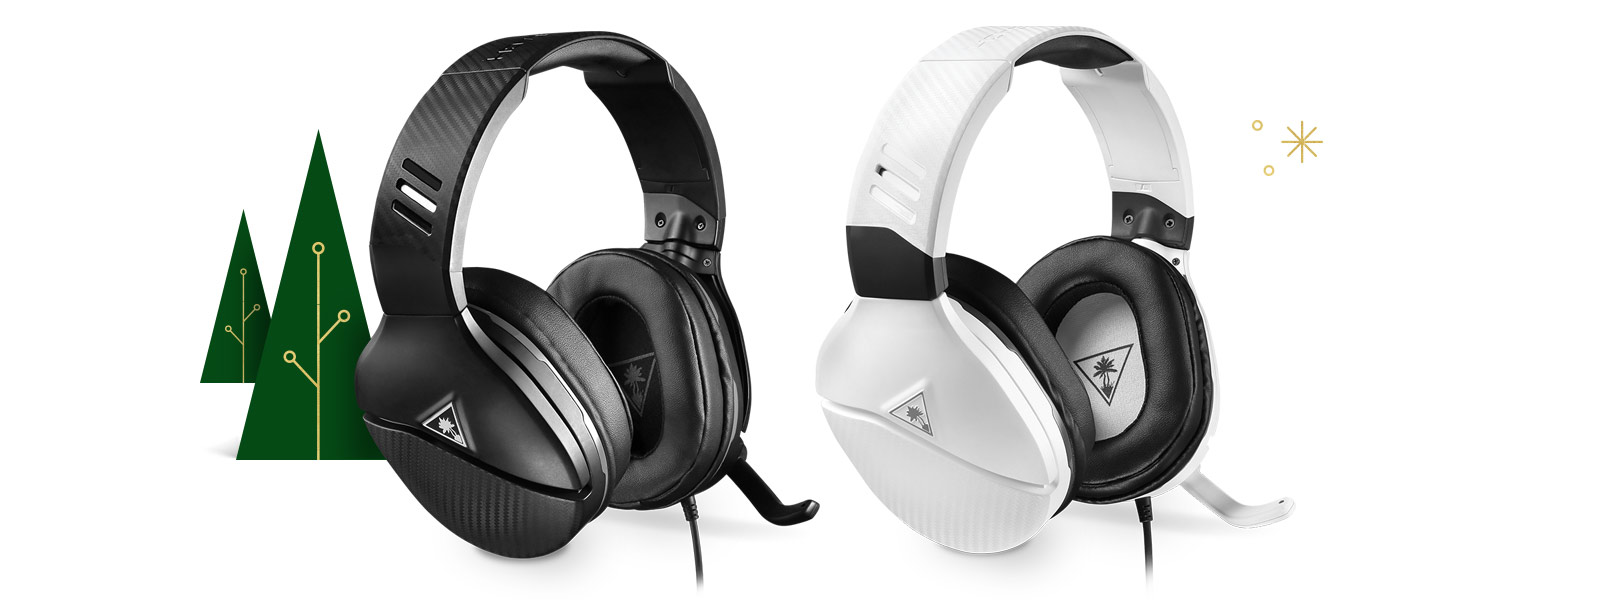 Two headsets, one black, one white, with trees in the background.